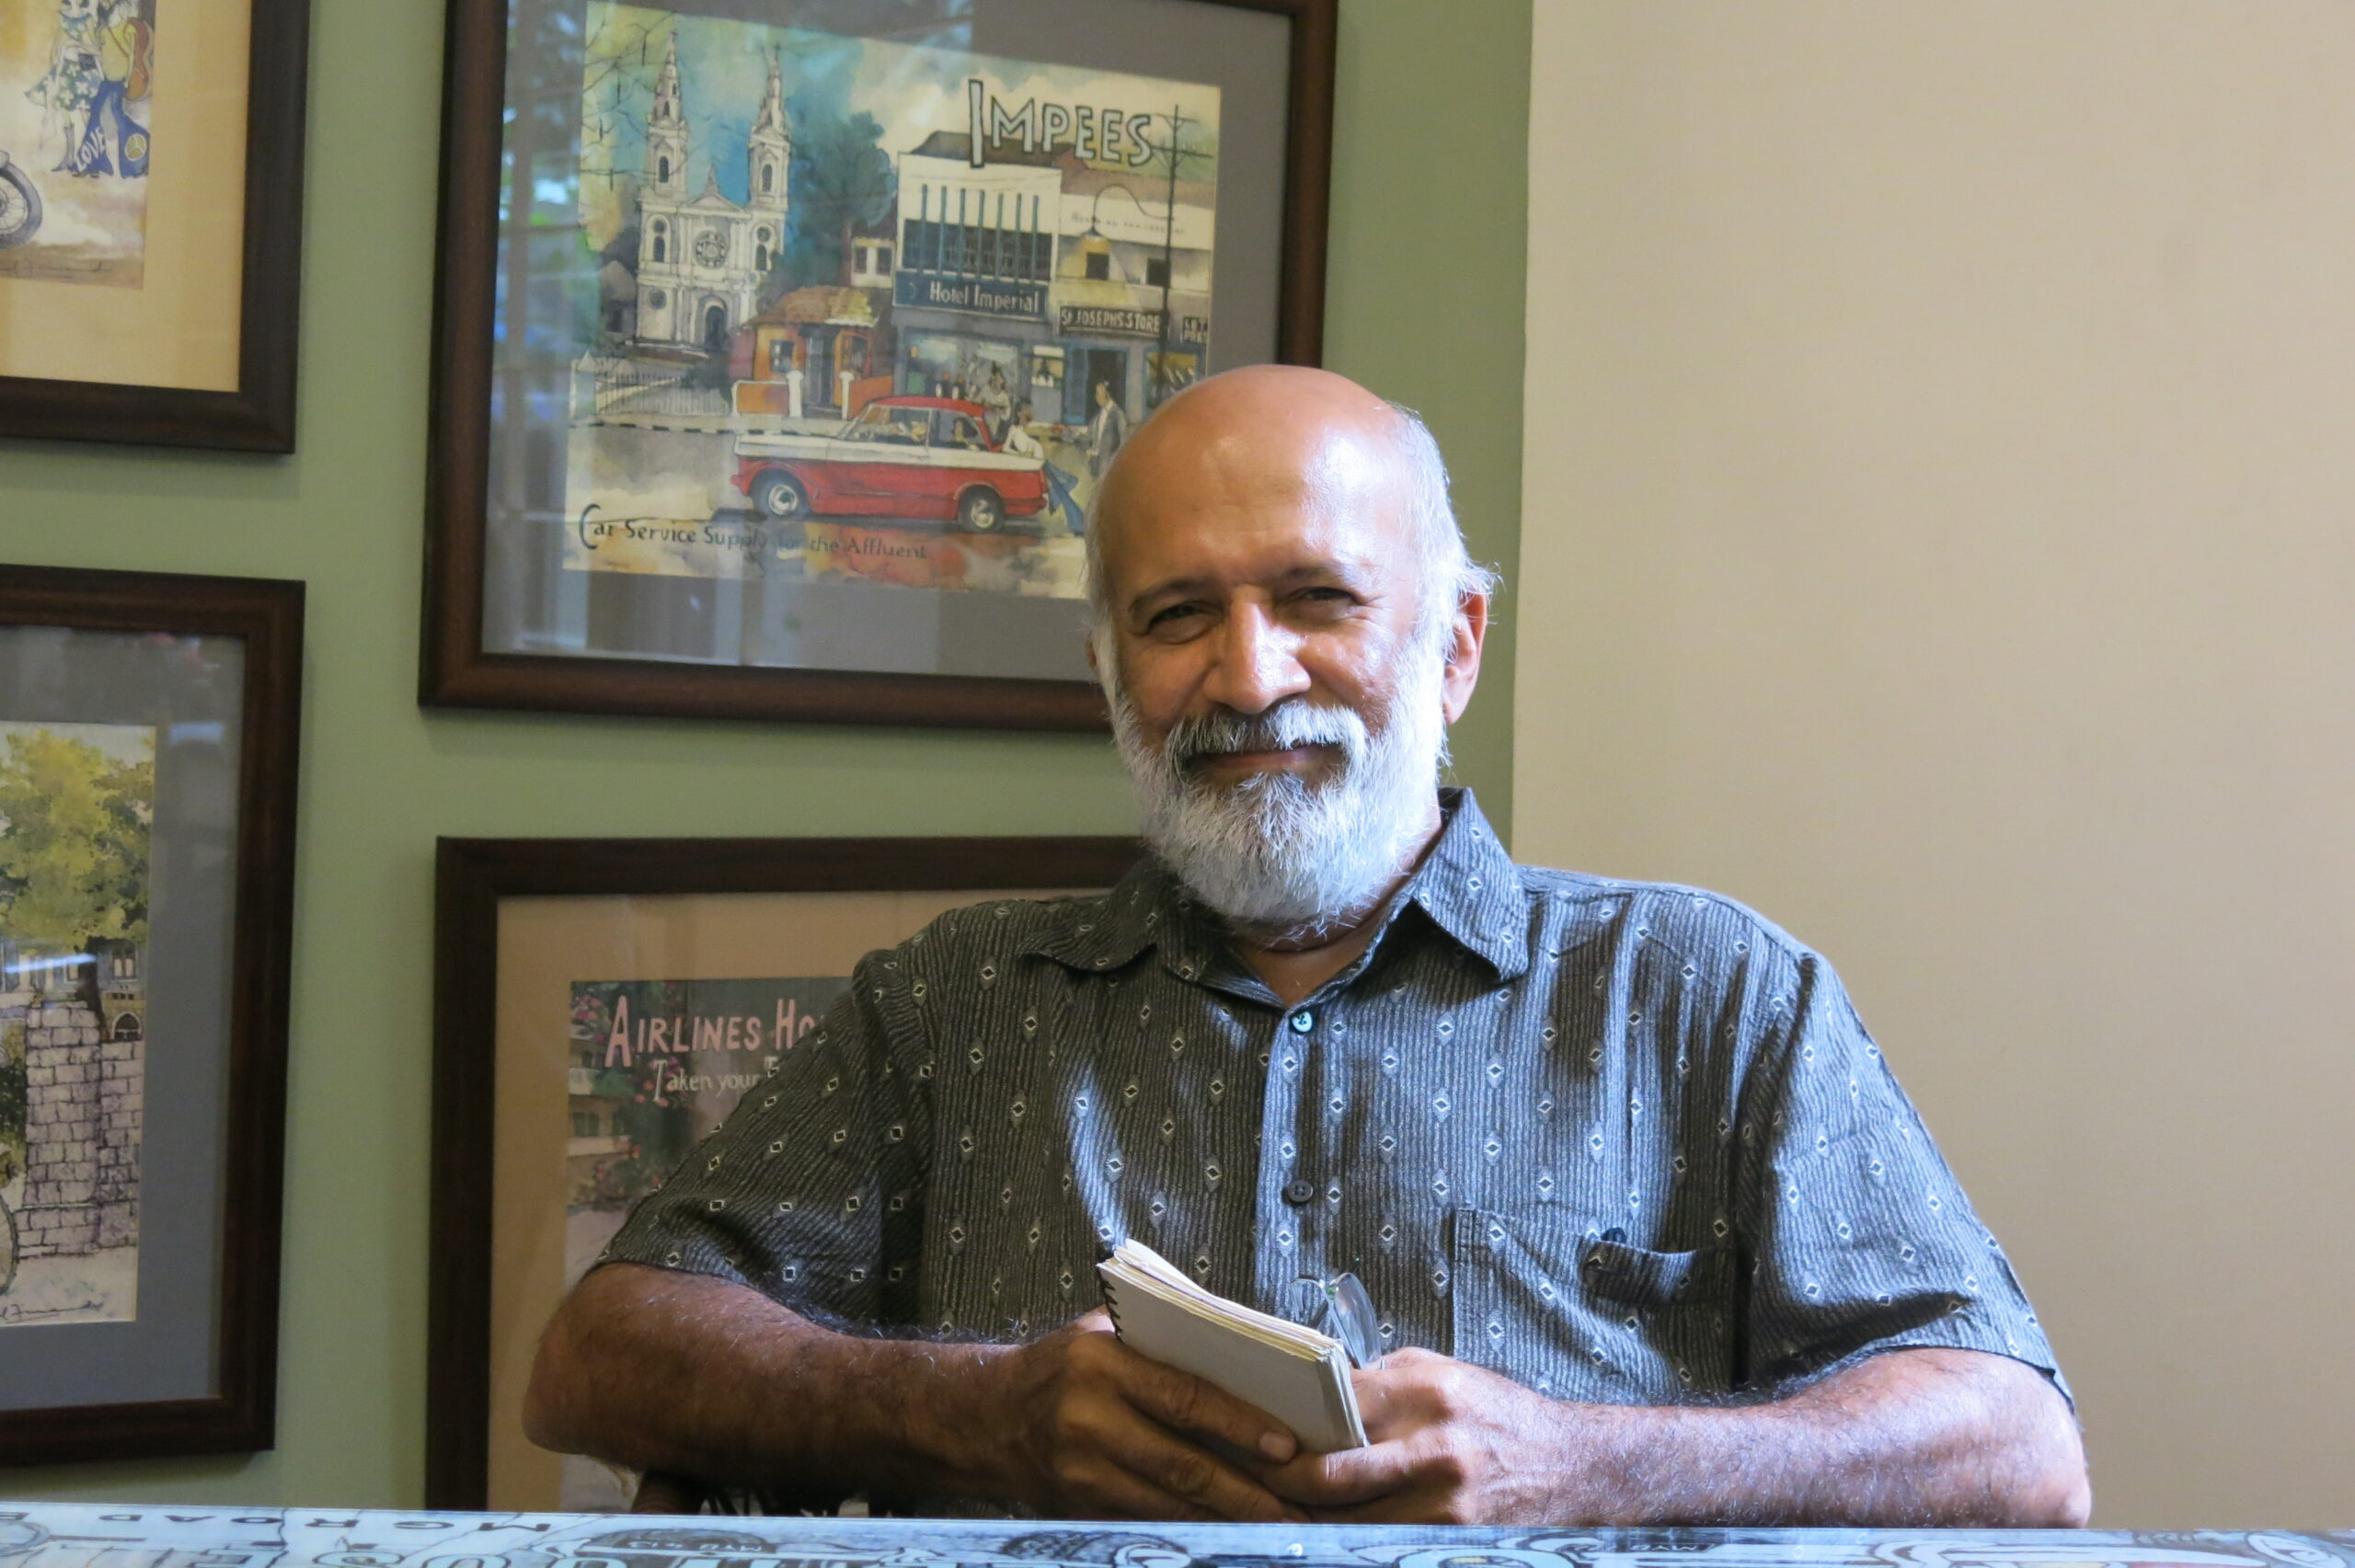 Paul Fernandes, author of Bangalore Swinging in the 70s